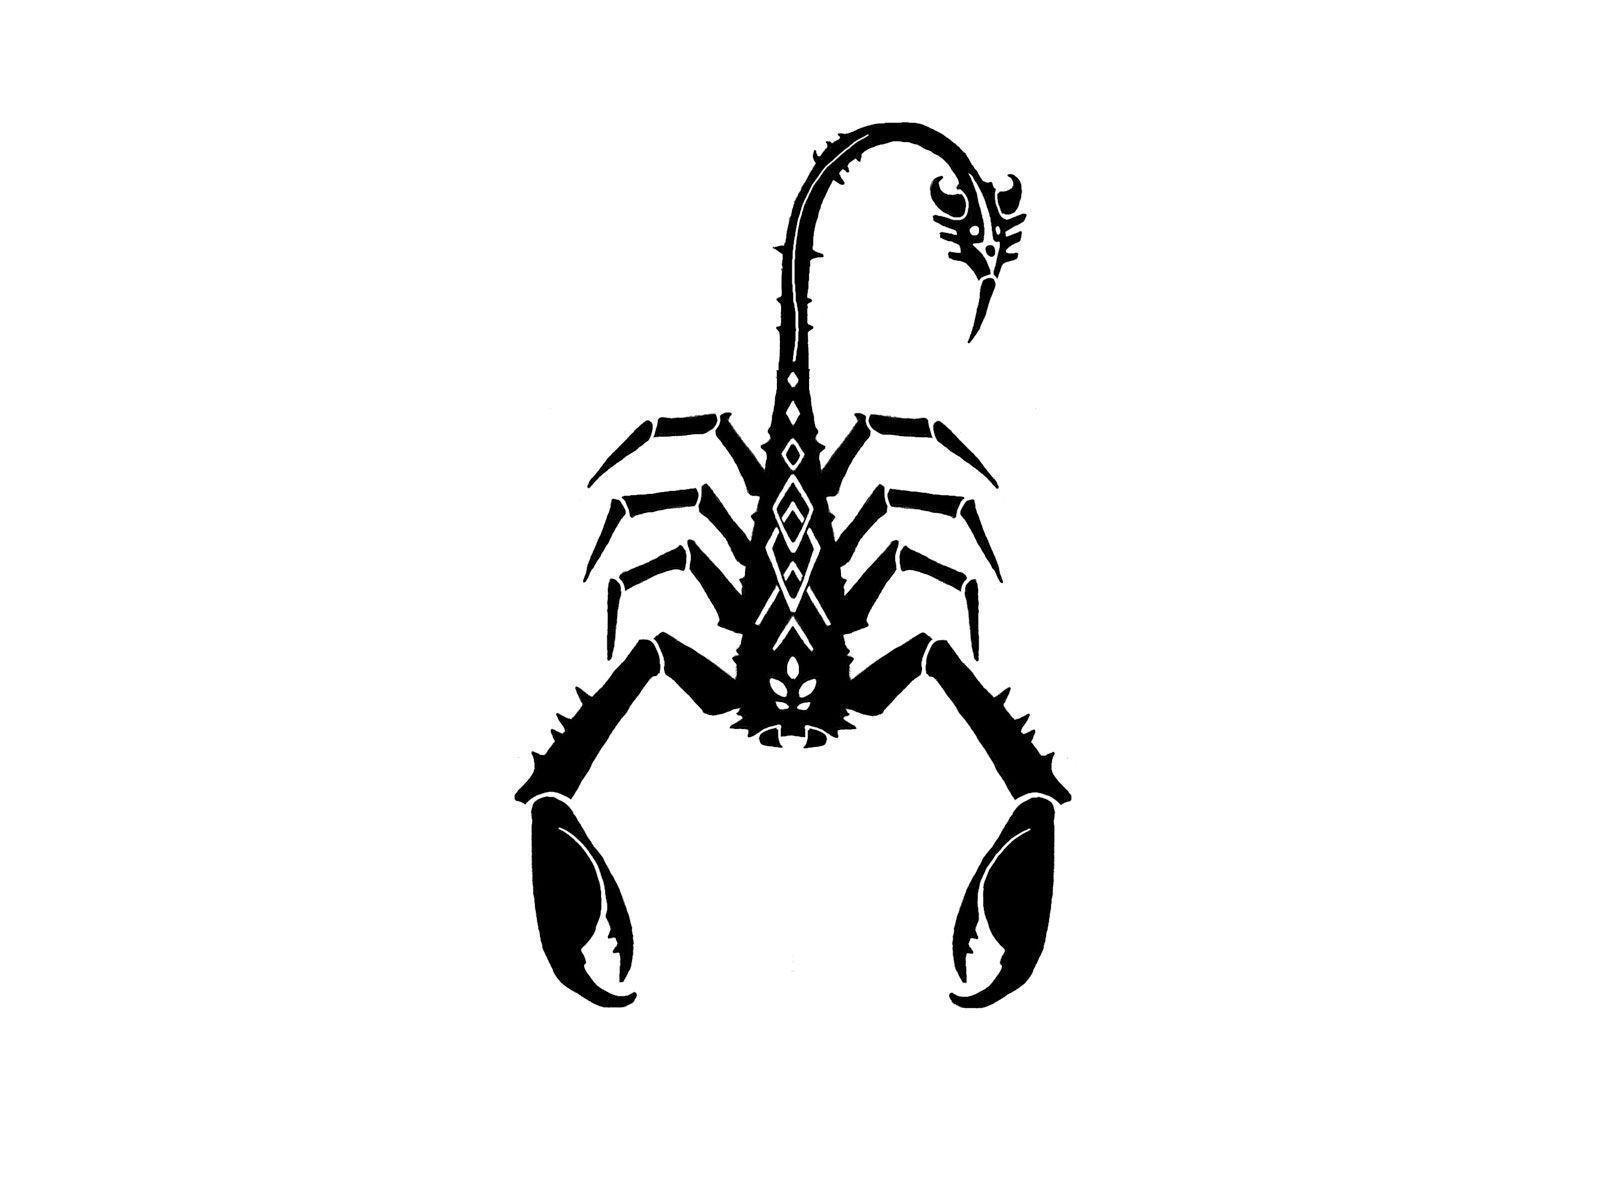 Free Download Scorpion Wallpapers